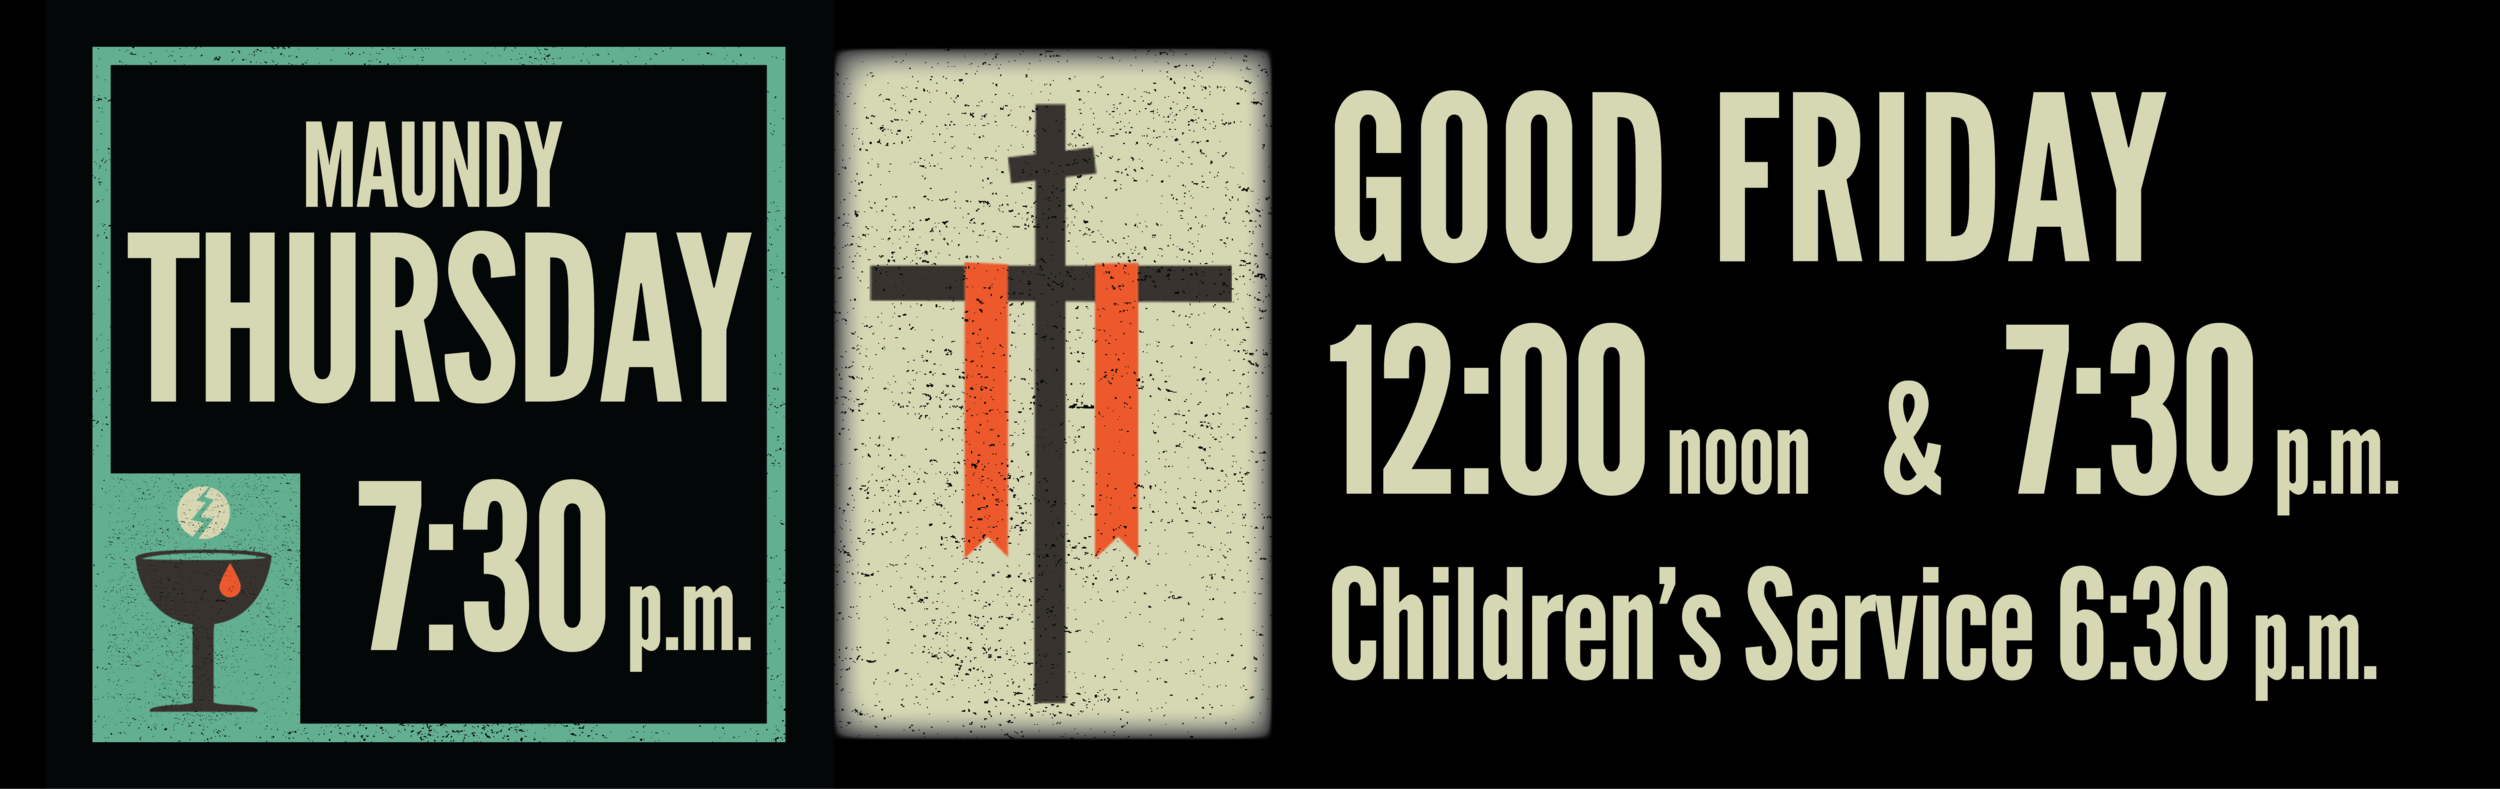 Maundy Thursday Good Friday Outdoor Banner 2018.png